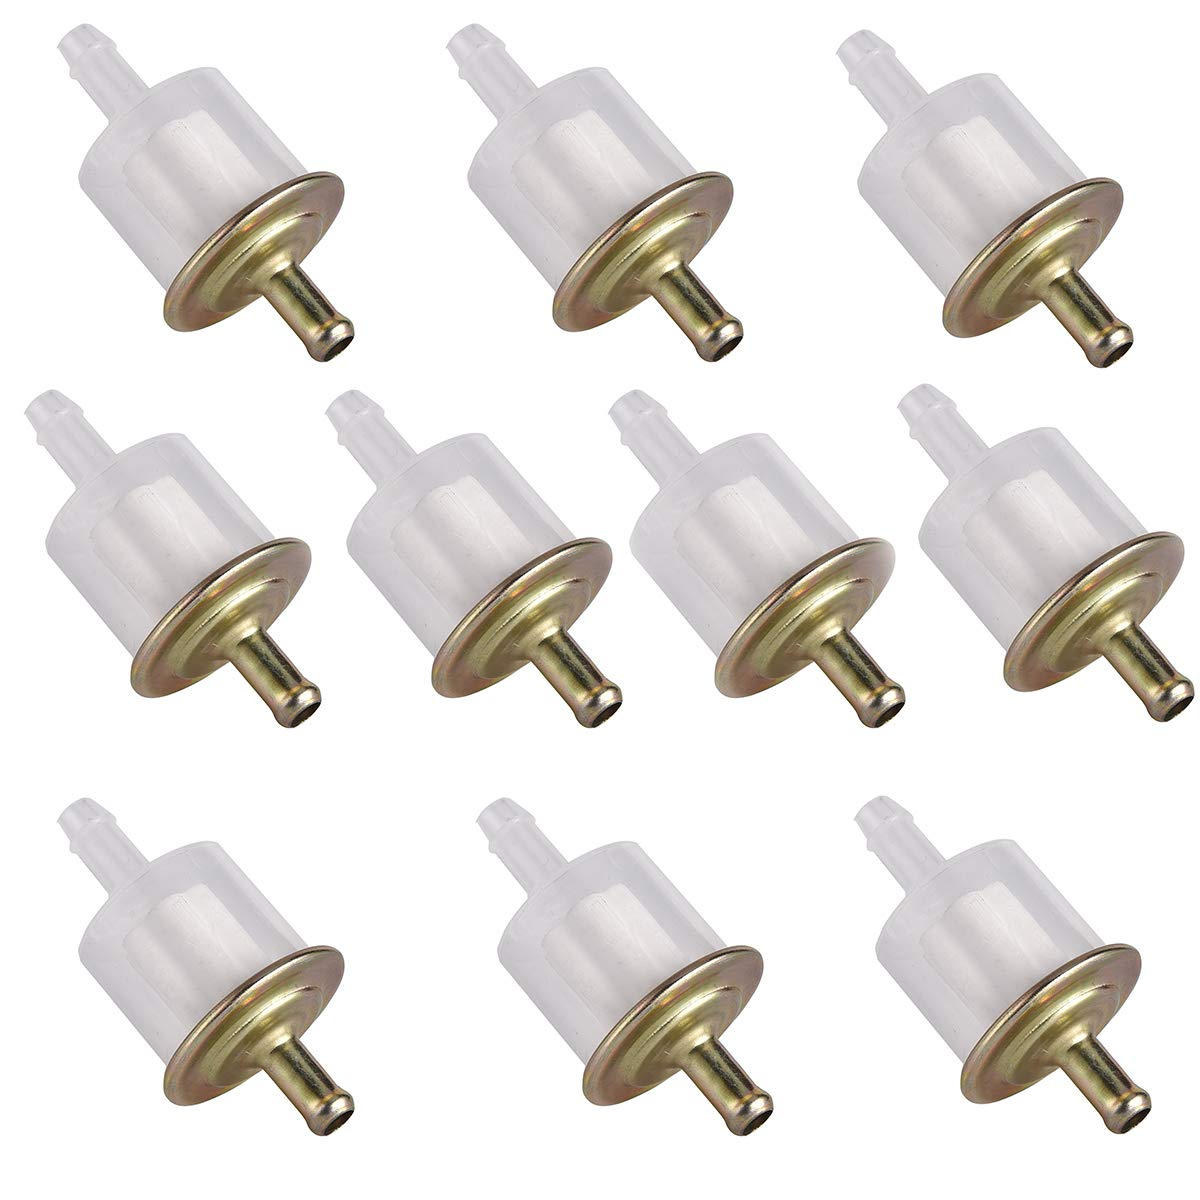 Fuel Filter Universal Motorcycle Dirtbike ATV Moped Scooters Pit Bike Pack of 10 10